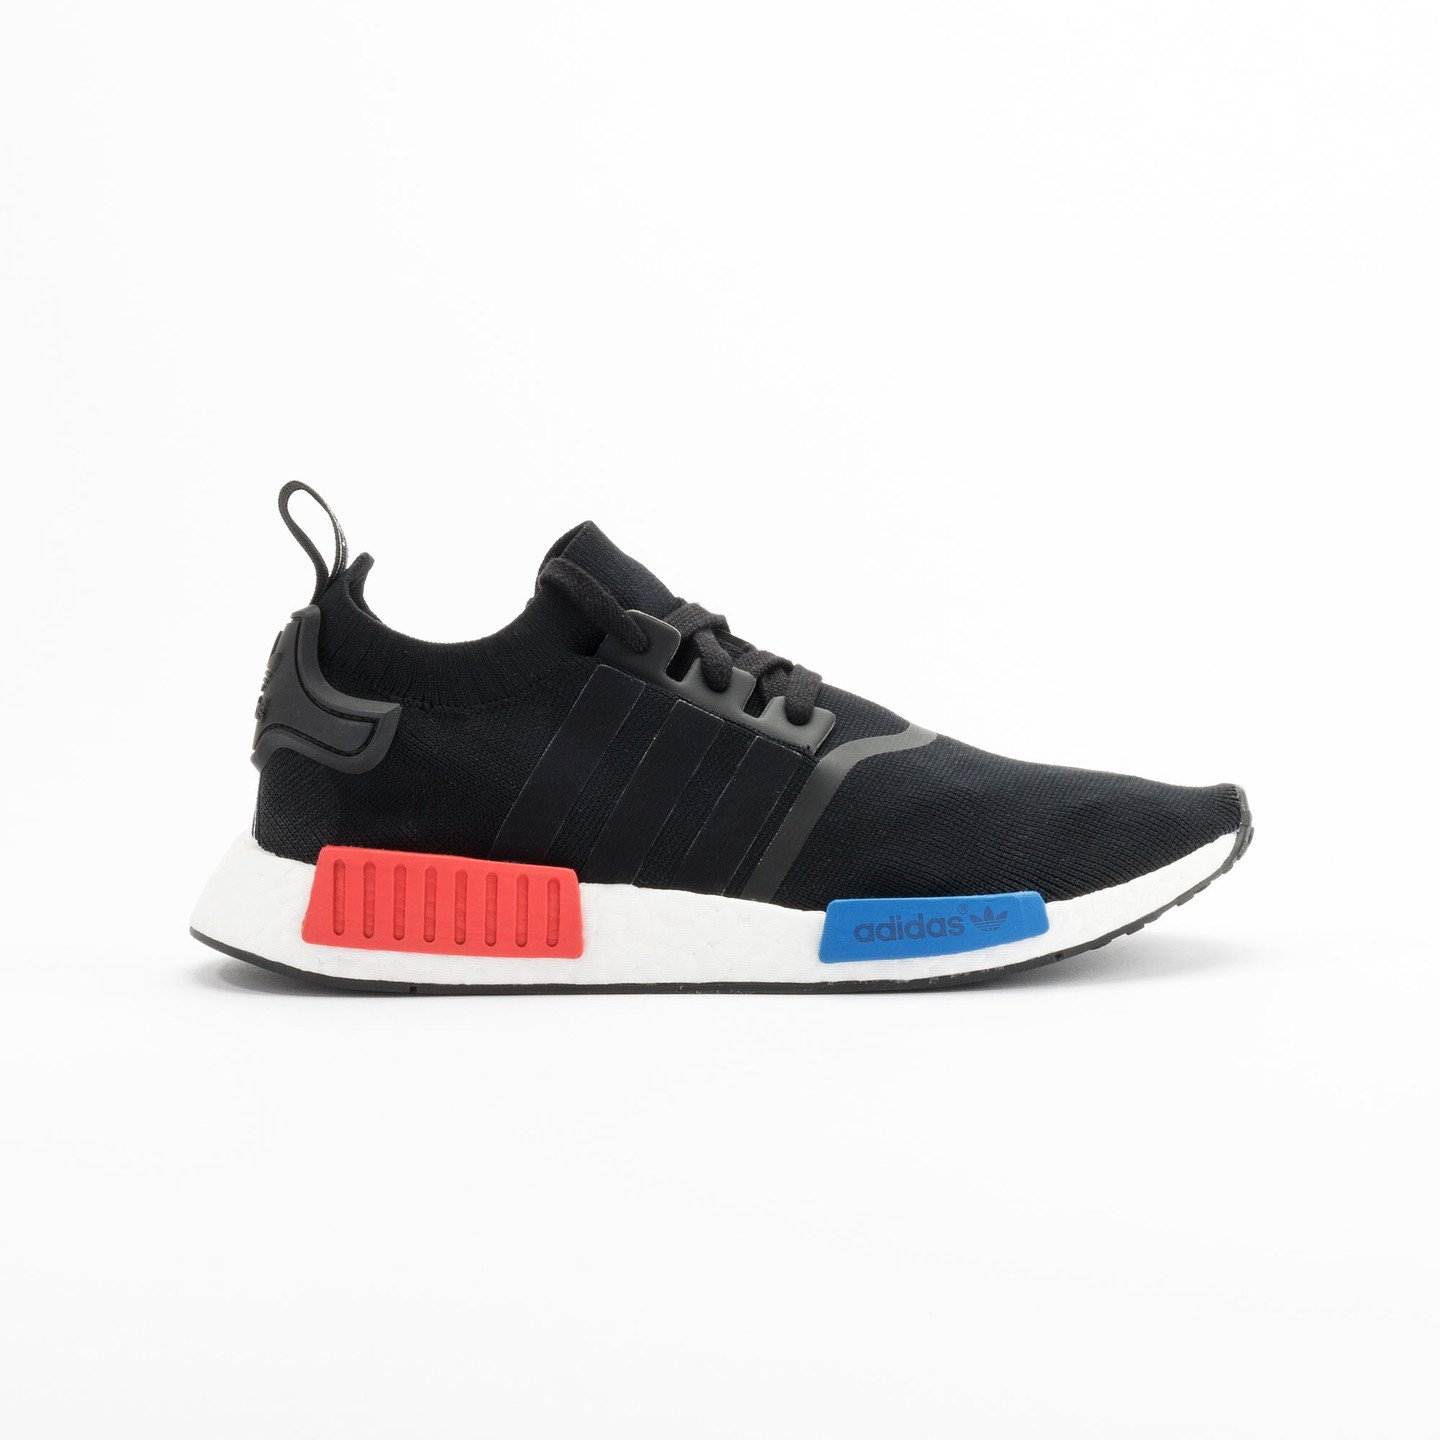 Adidas NMD Runner PK Primeknit Black / Red / Blue / White S79168-44.66